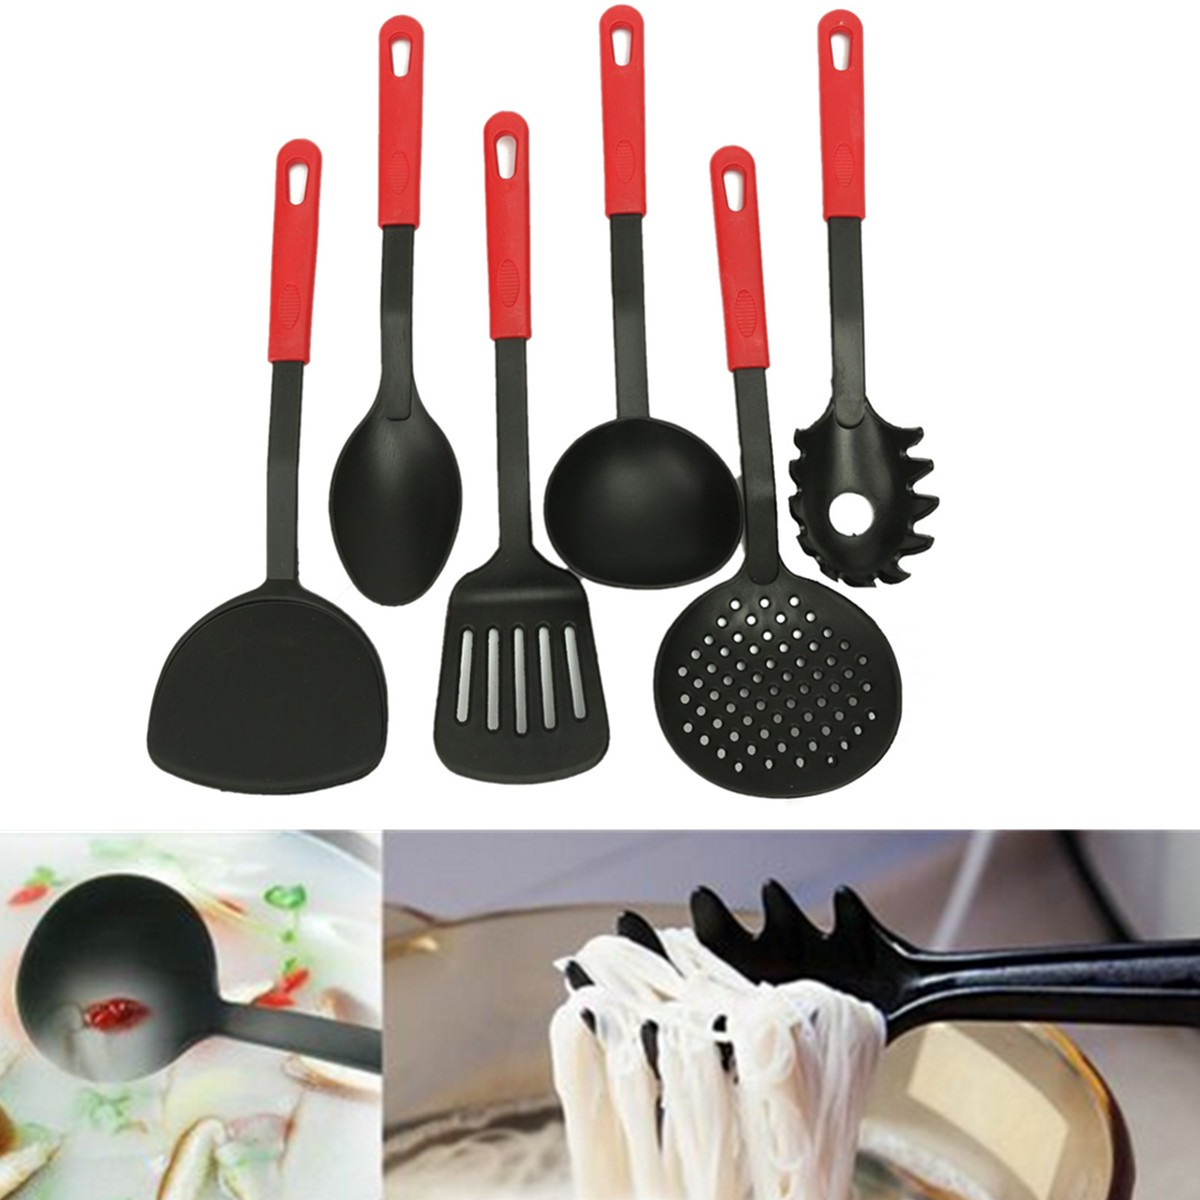 Kitchen Set Lazada: New 6 Piece Black Nylon Kitchen Cooking Utensil Set Gadget